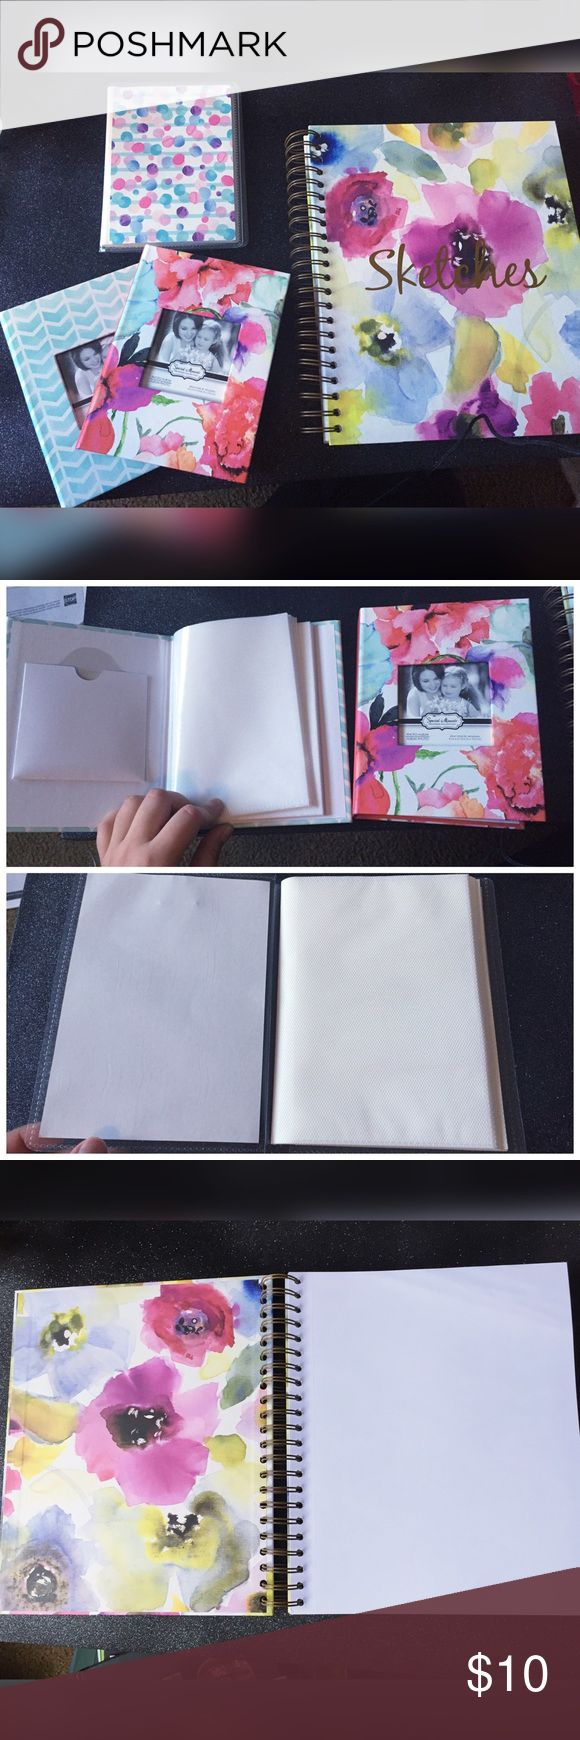 Photo Album Bundle (1) 4x6 photo album (holds 48 photos)  (2) 4x6 photo albums (hold 24 photos each)  (1) Sketch book acid free paper (176 pages) can be used as a scrap book Other